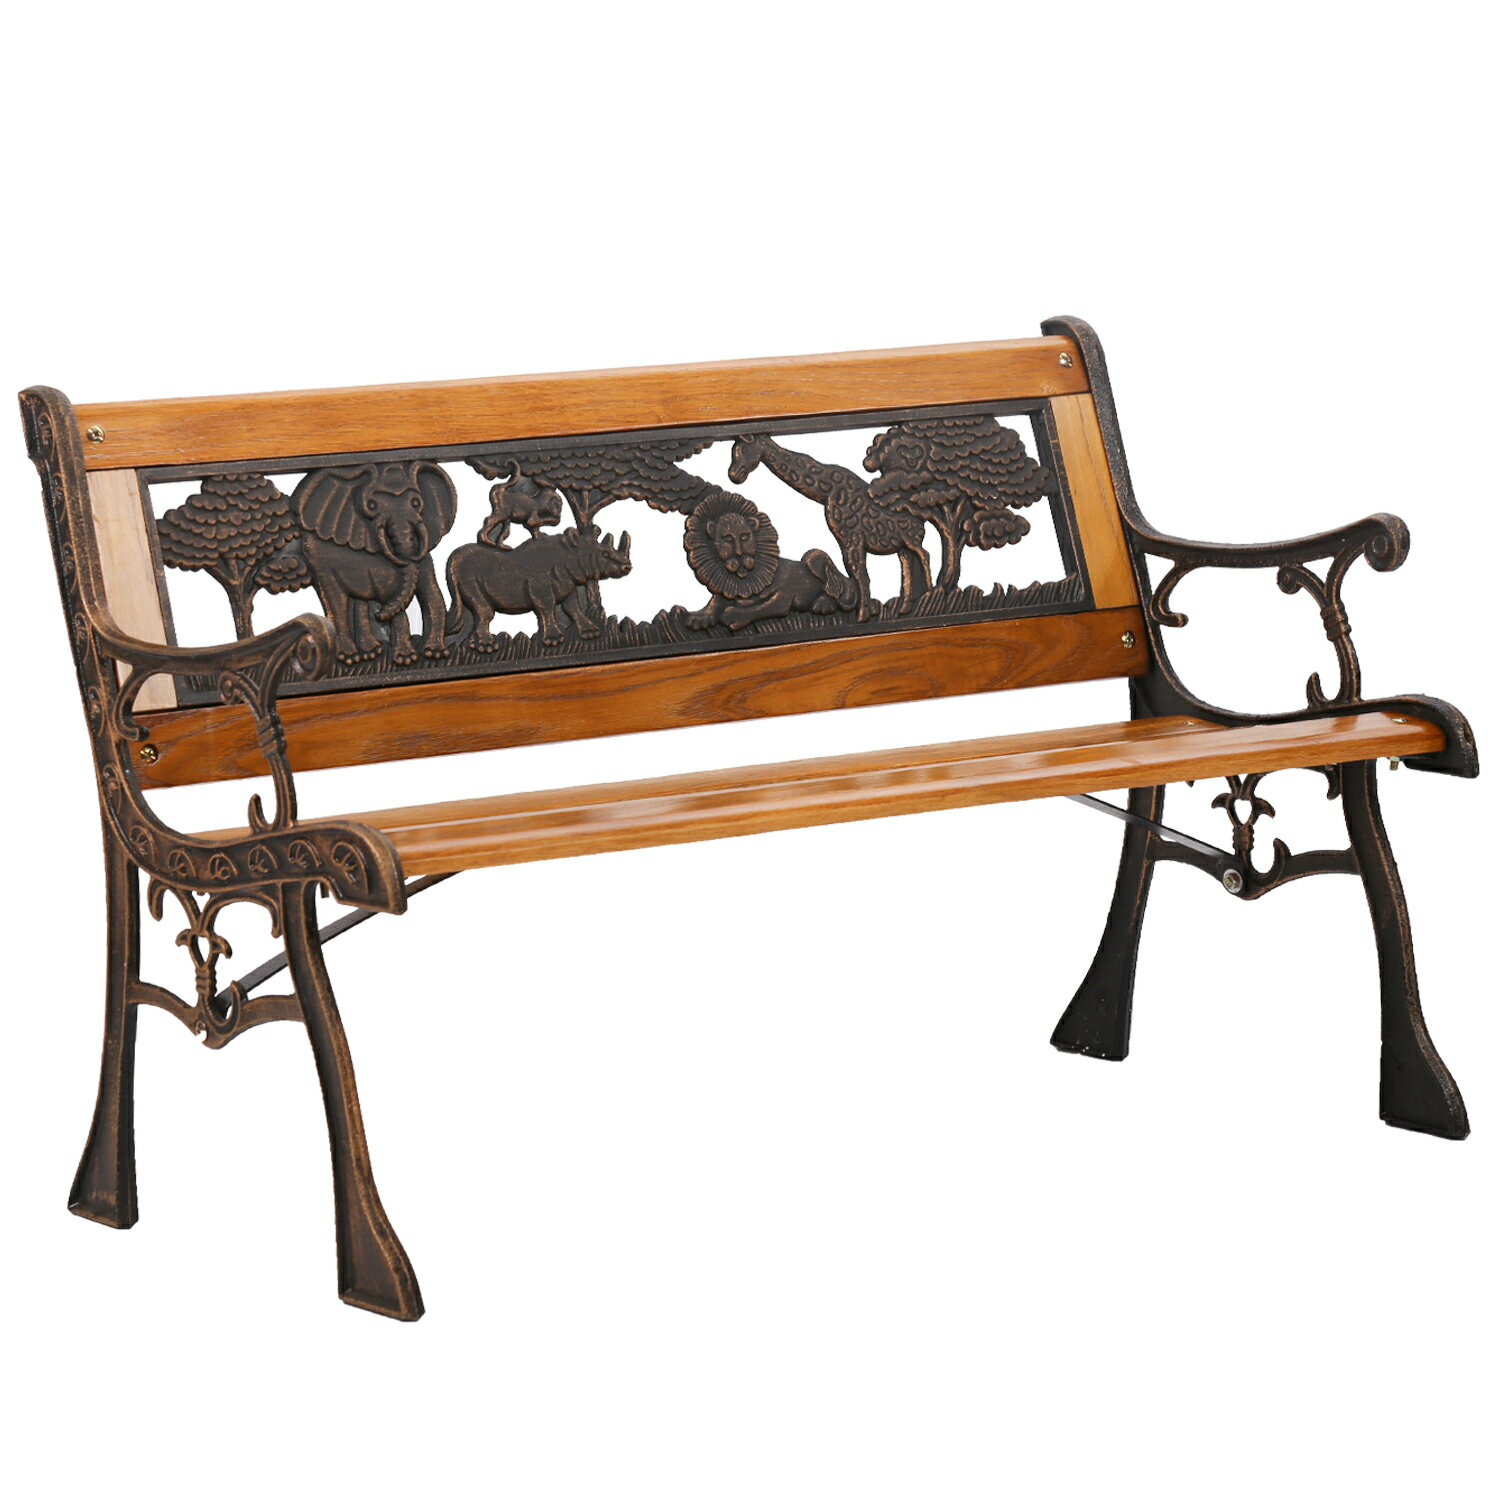 Astounding Outdoor Kids Garden Bench Park Metal Aluminum And Wood Benches Clearance For Patio Yard Caraccident5 Cool Chair Designs And Ideas Caraccident5Info